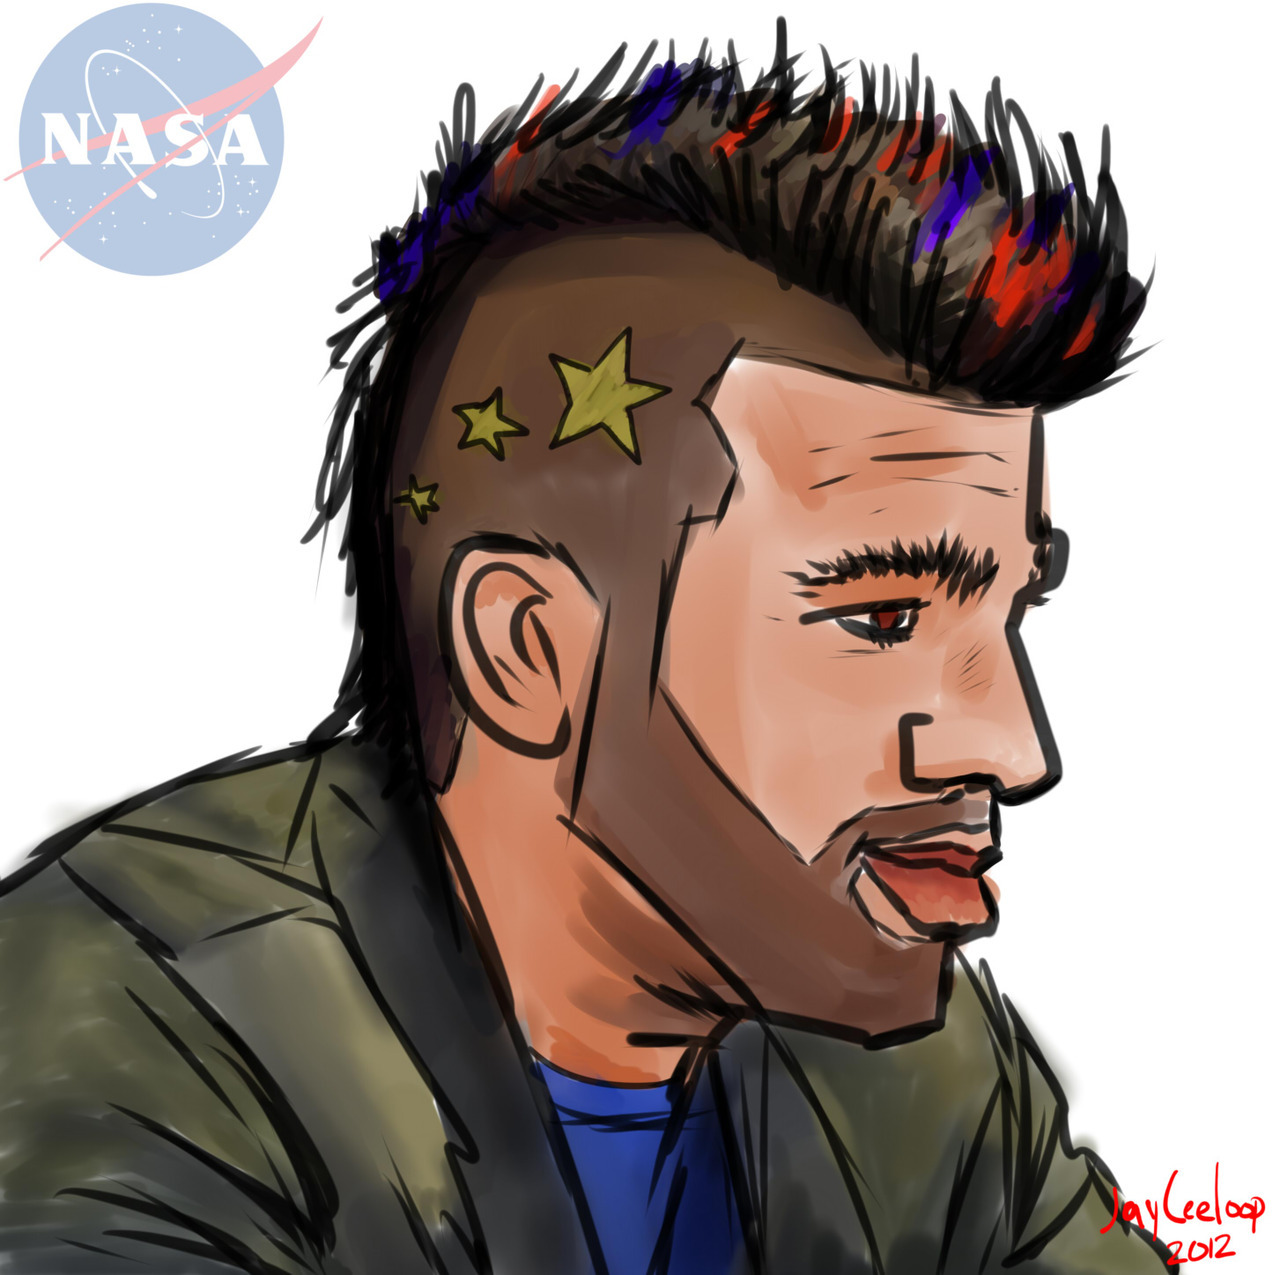 Bobak Ferdowsi, the Mohawk Guy <3